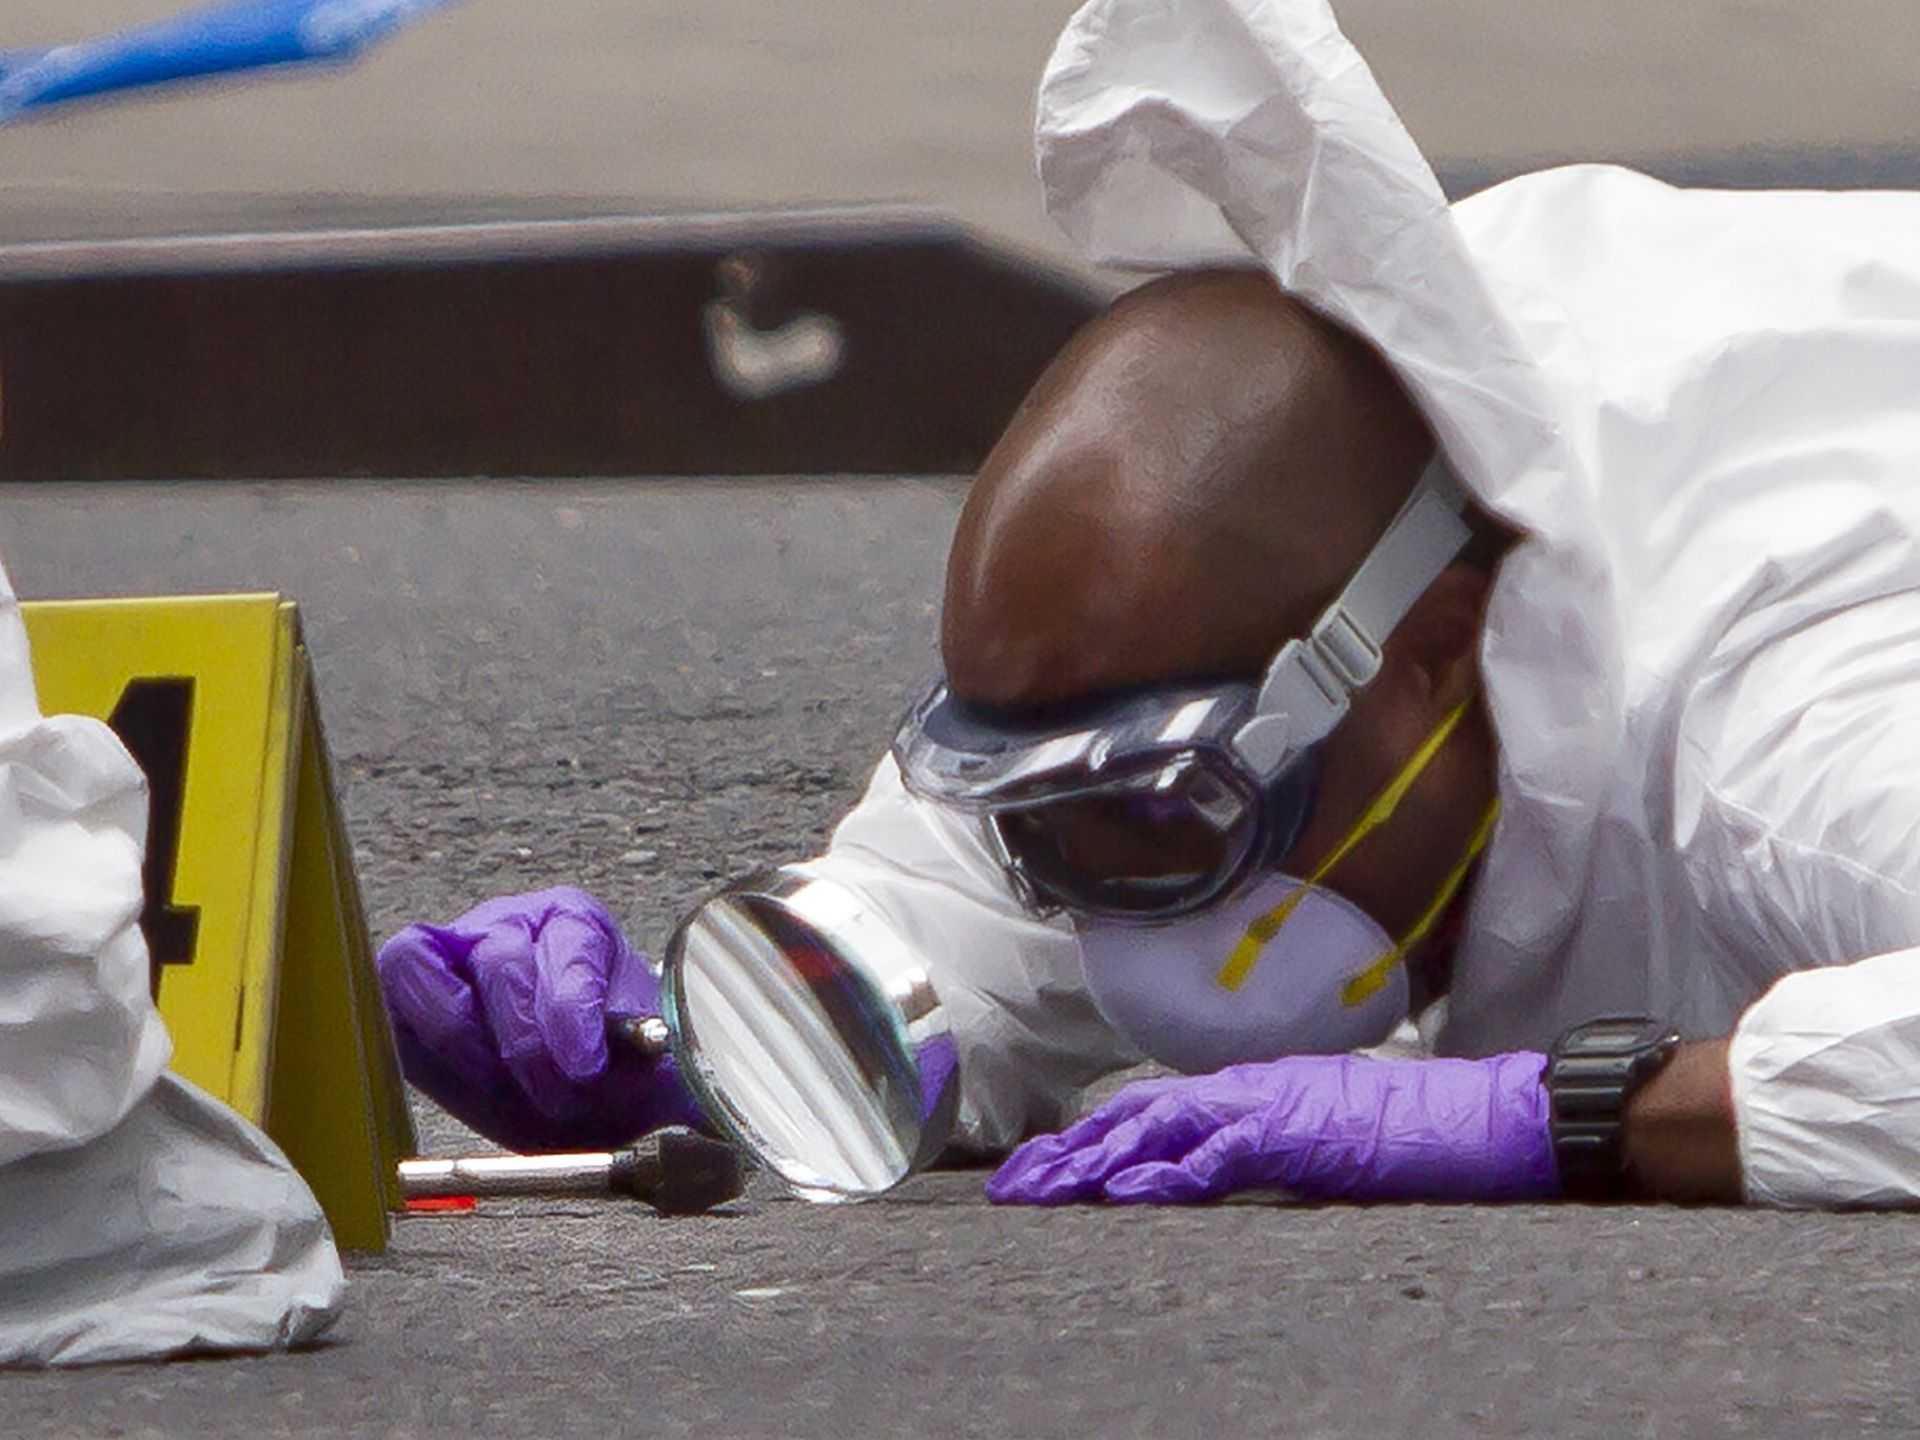 A New York Police Department investigator examines a hammer after a shooting on May 13. A man attacking pedestrians with a hammer was shot by police in Midtown Manhattan.  Bebeto Matthews, AP